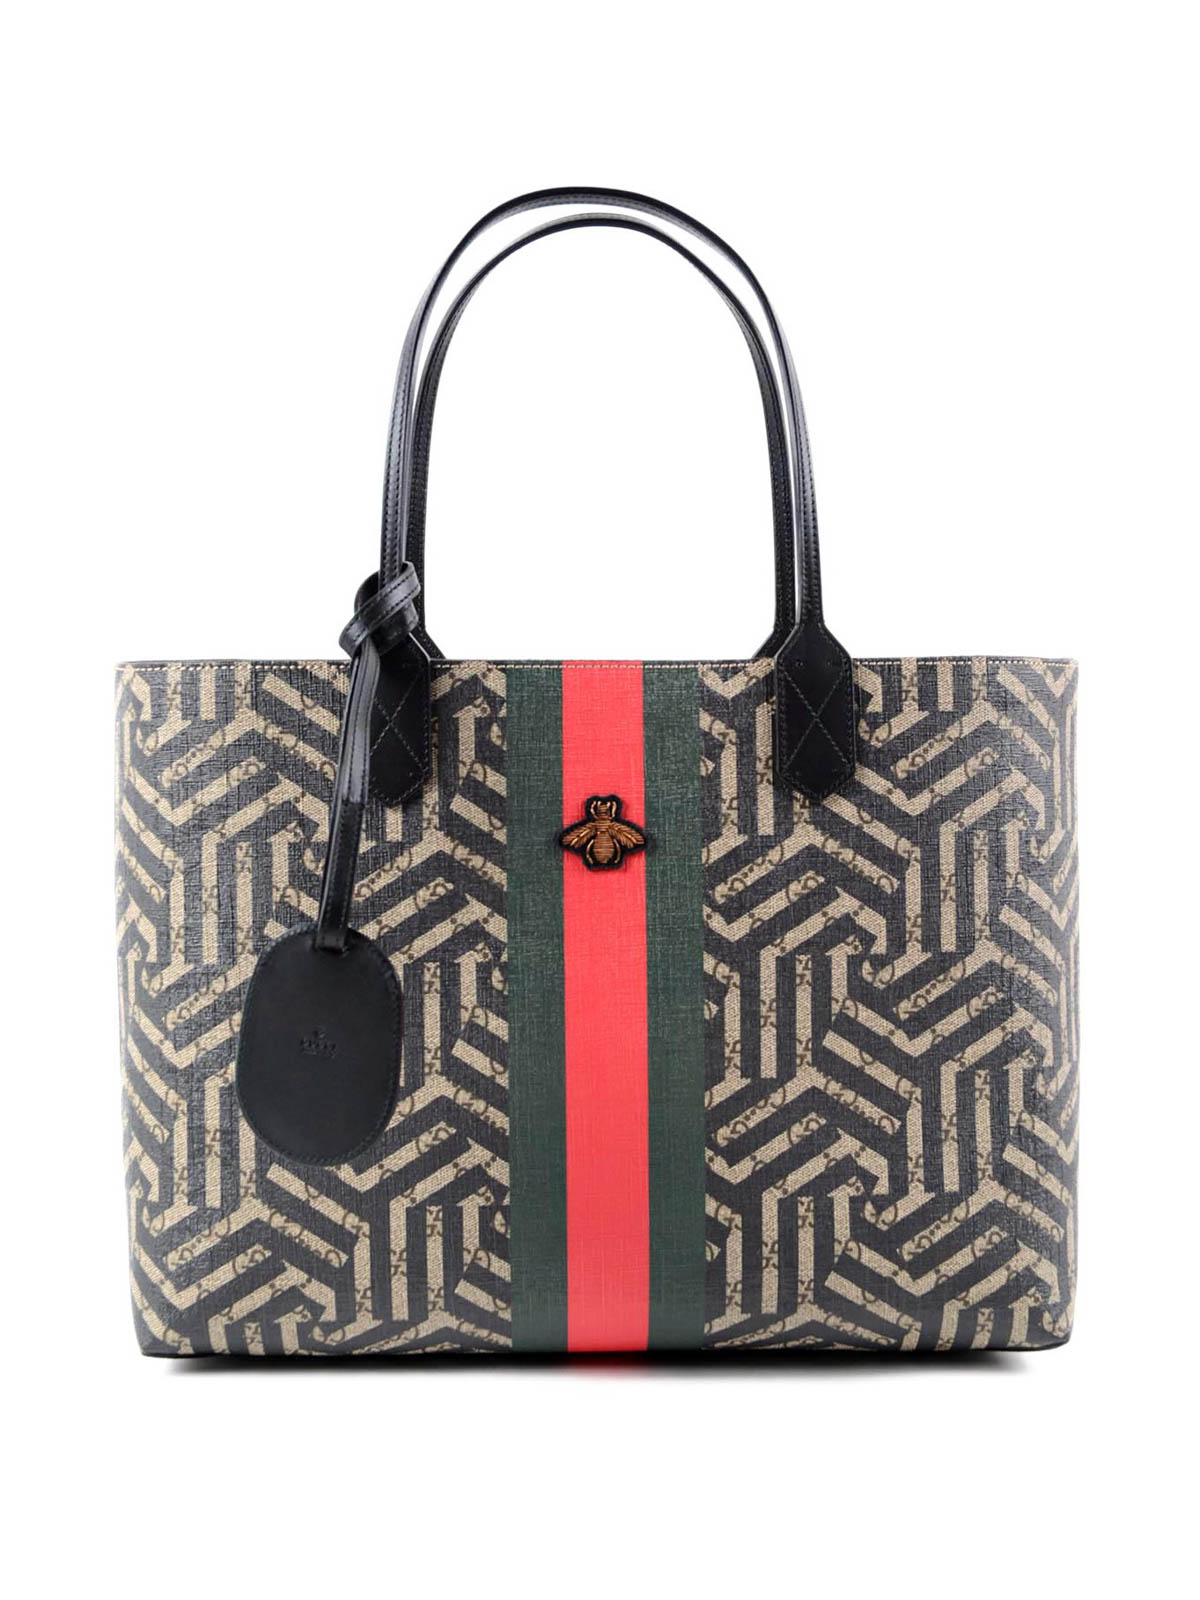 gg caleido web tote bag by gucci totes bags ikrix. Black Bedroom Furniture Sets. Home Design Ideas